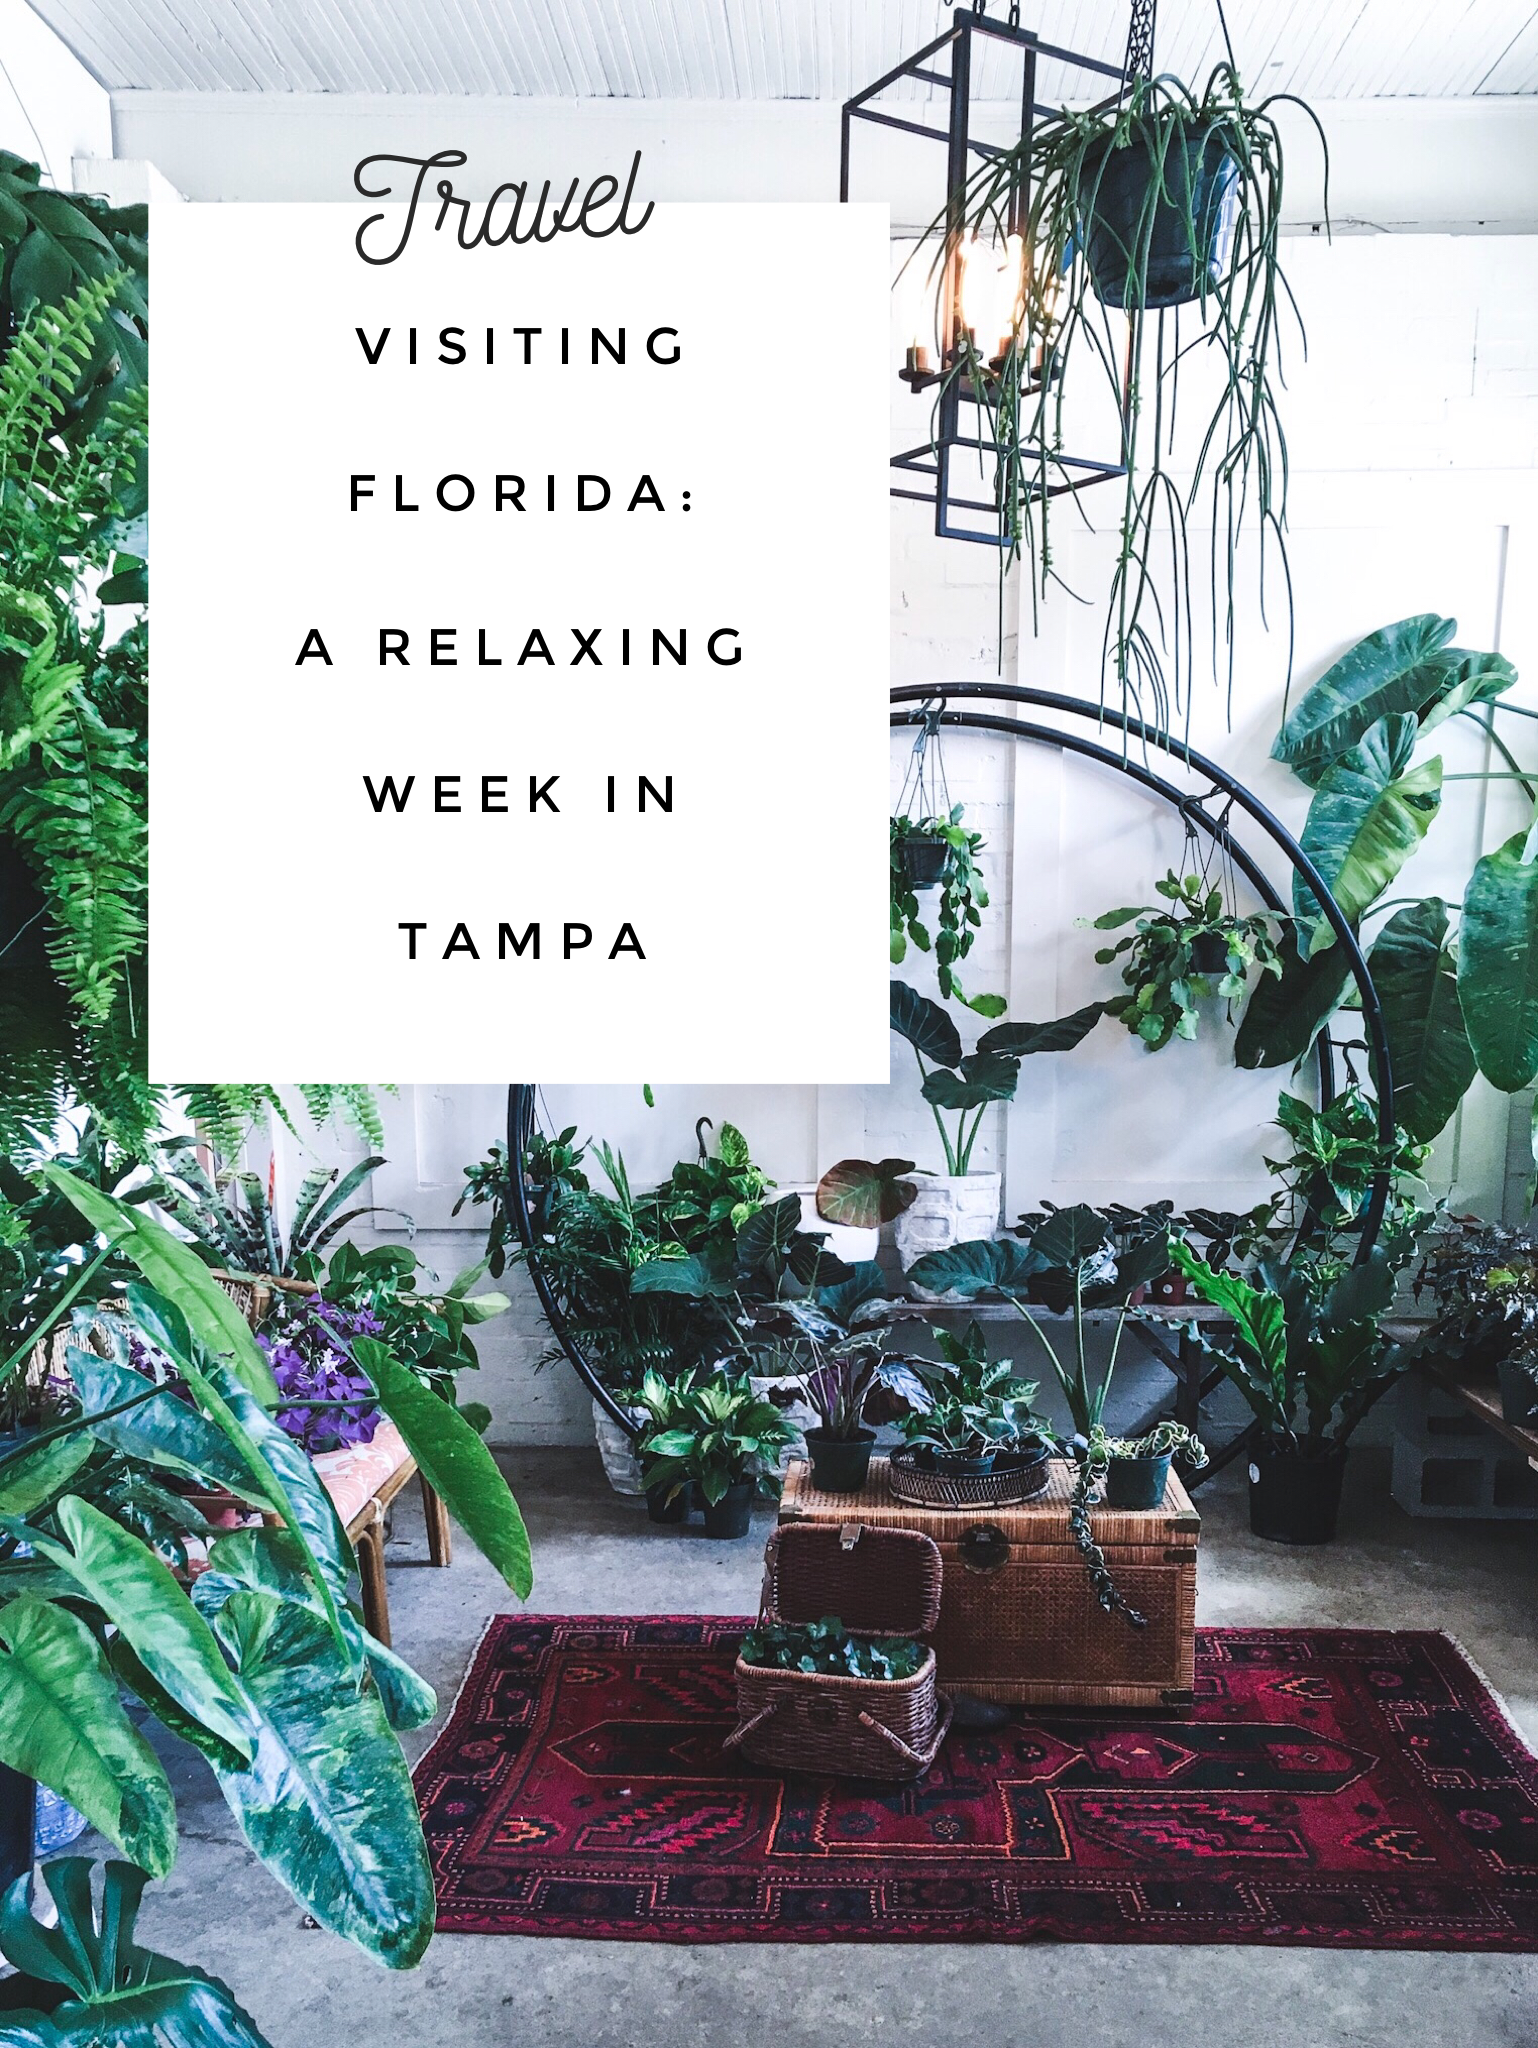 Visiting Florida A Relaxing Week In Tampa With Images Visit